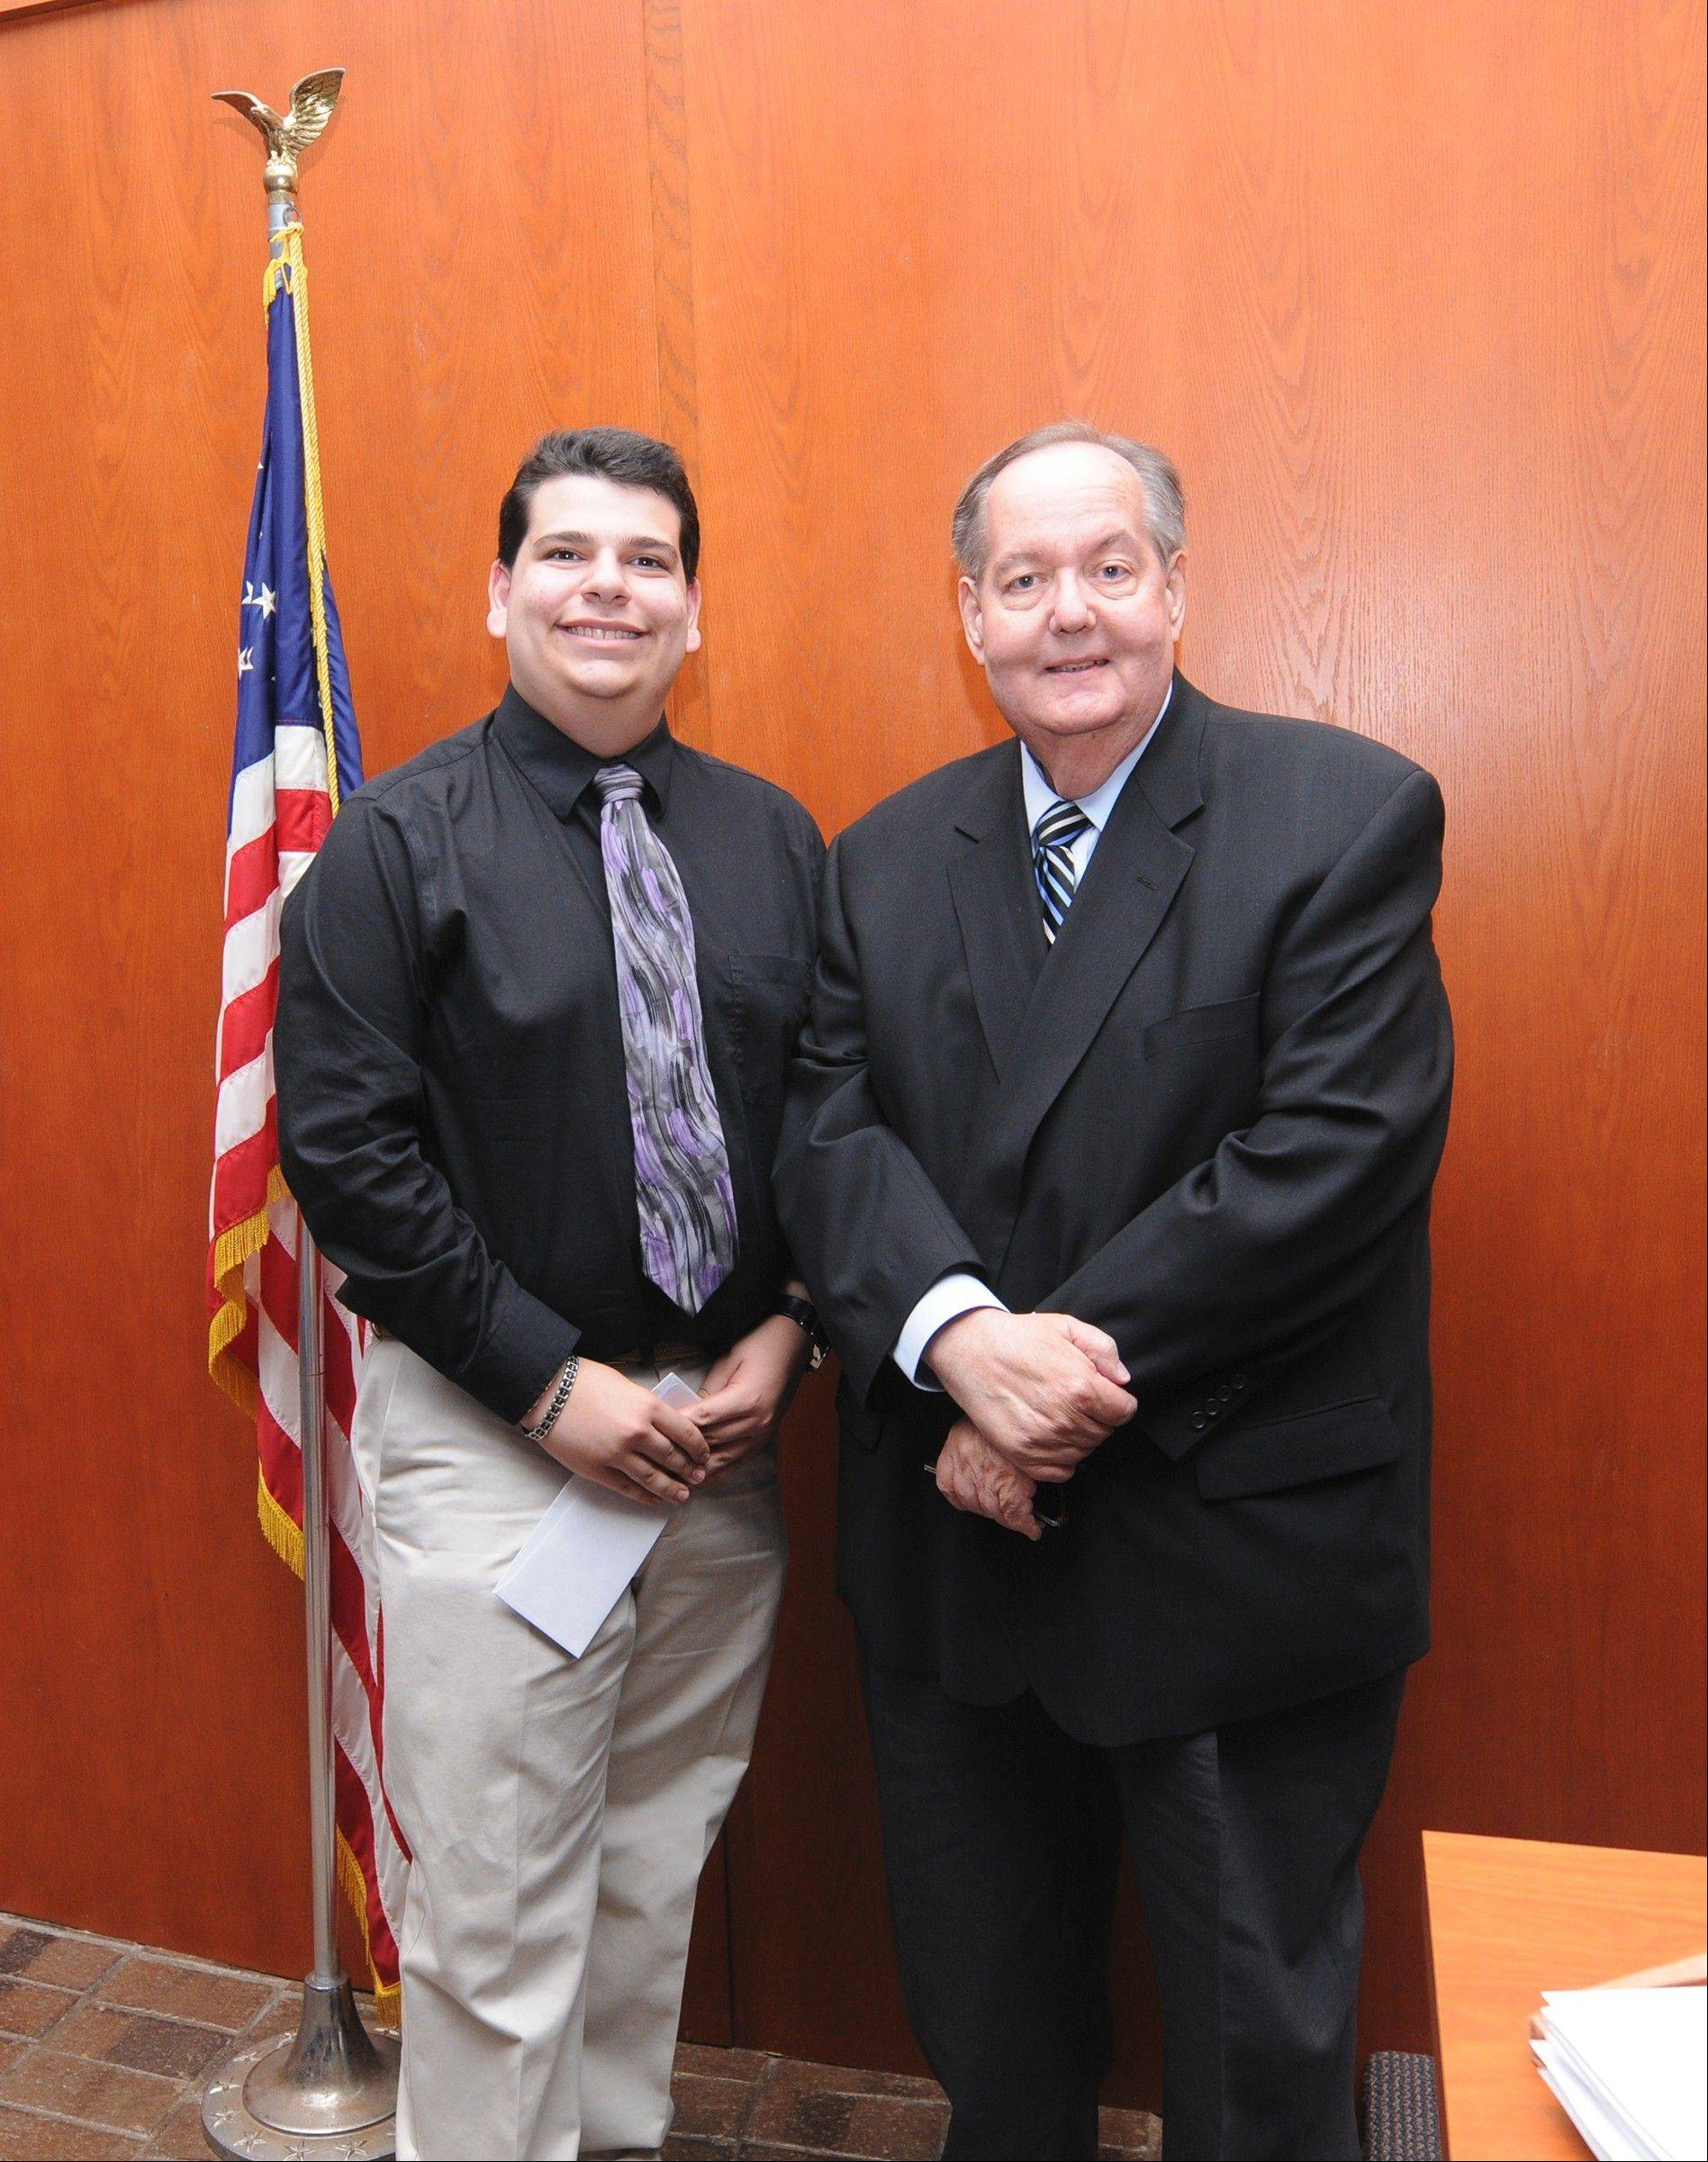 Kelliher-Lawless Scholarship recipient Jason Brescia of Hoffman Estates, left, with Schaumburg Trustee George Dunham.